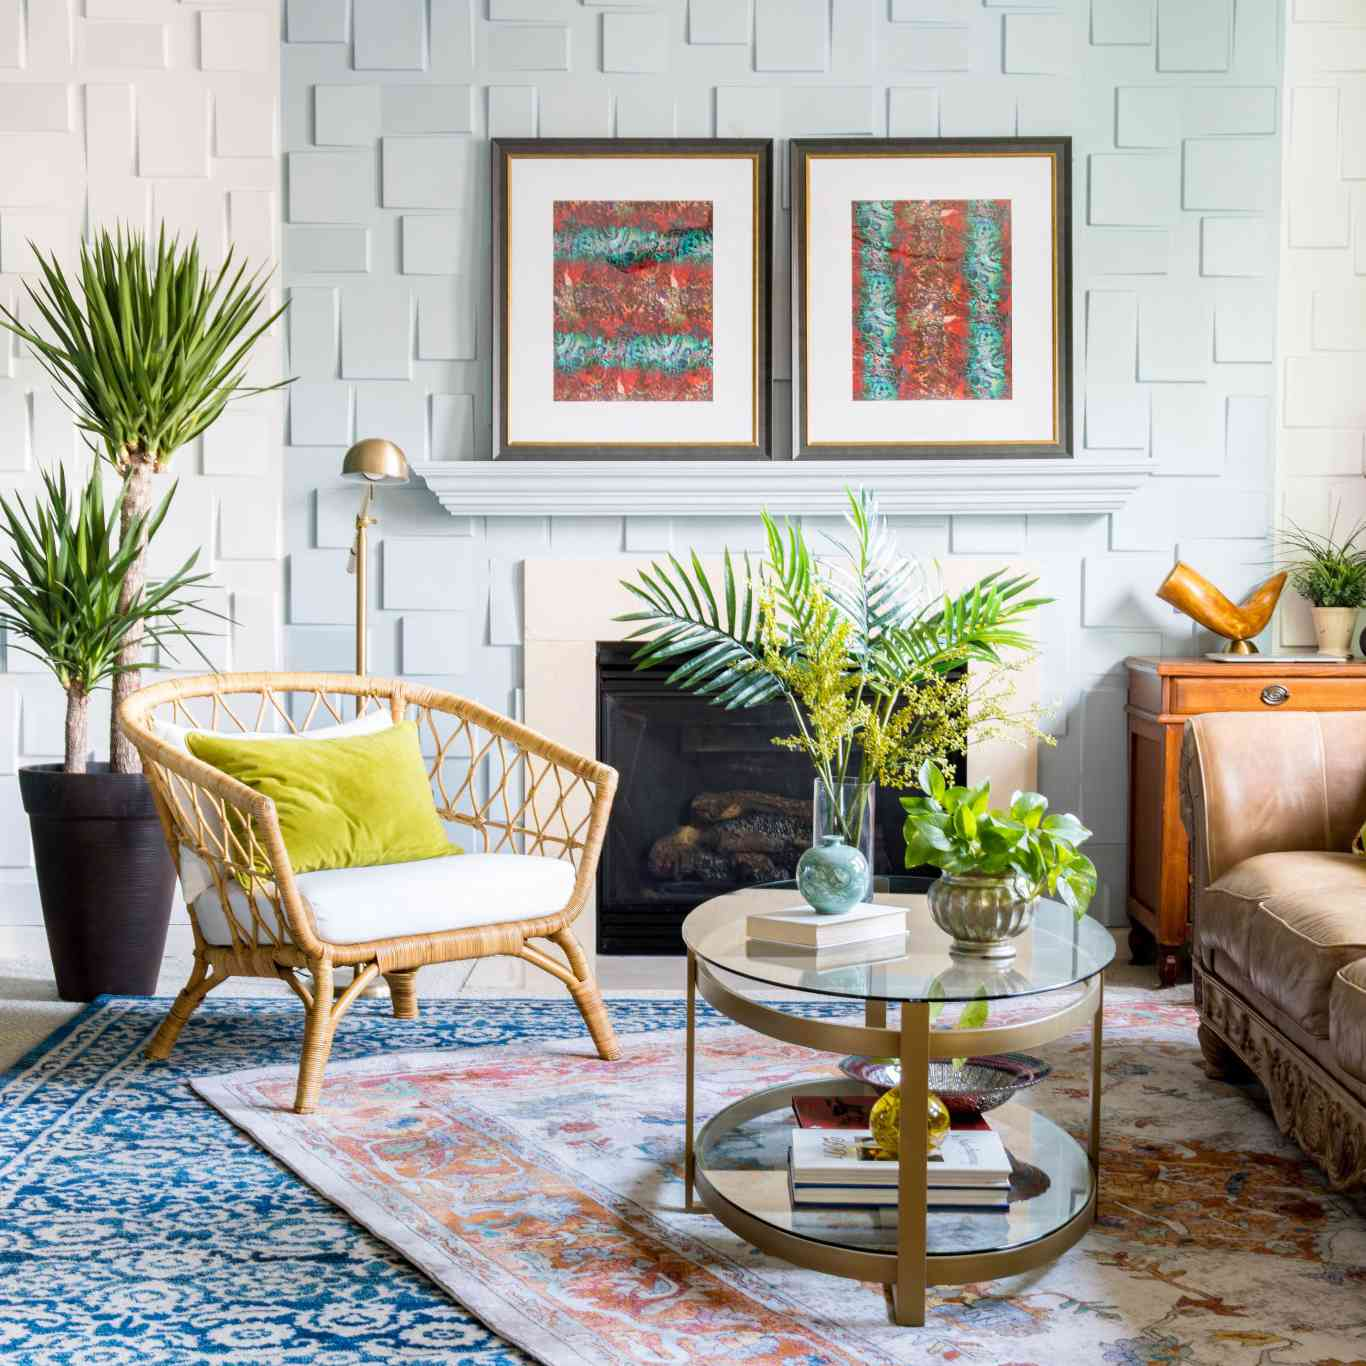 A bohemian living room with red and turquoise art in it